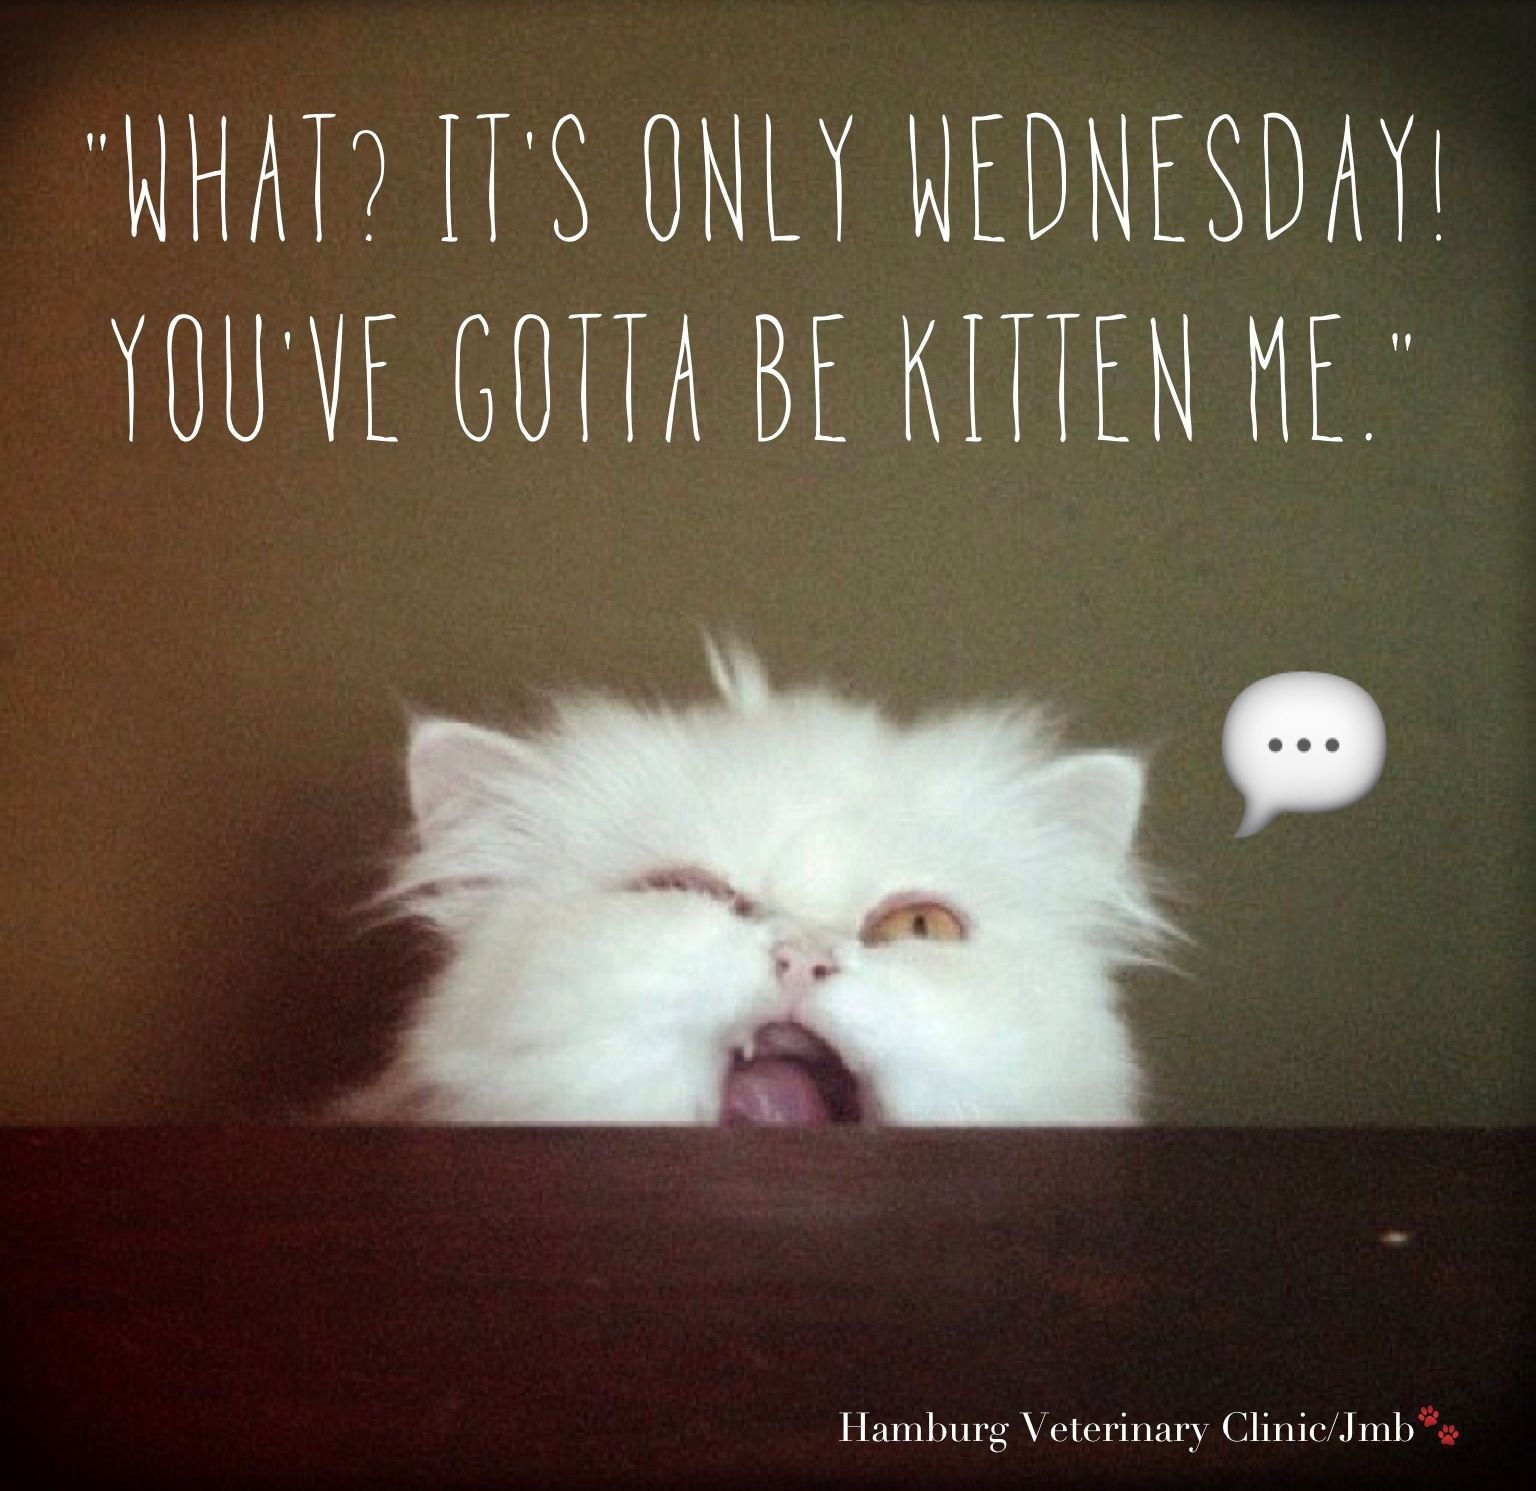 Wednesday Funny Animal Humor What It 039 S Only Wednesday Wednesday Humor Wednesday Memes Happy Wednesday Quotes